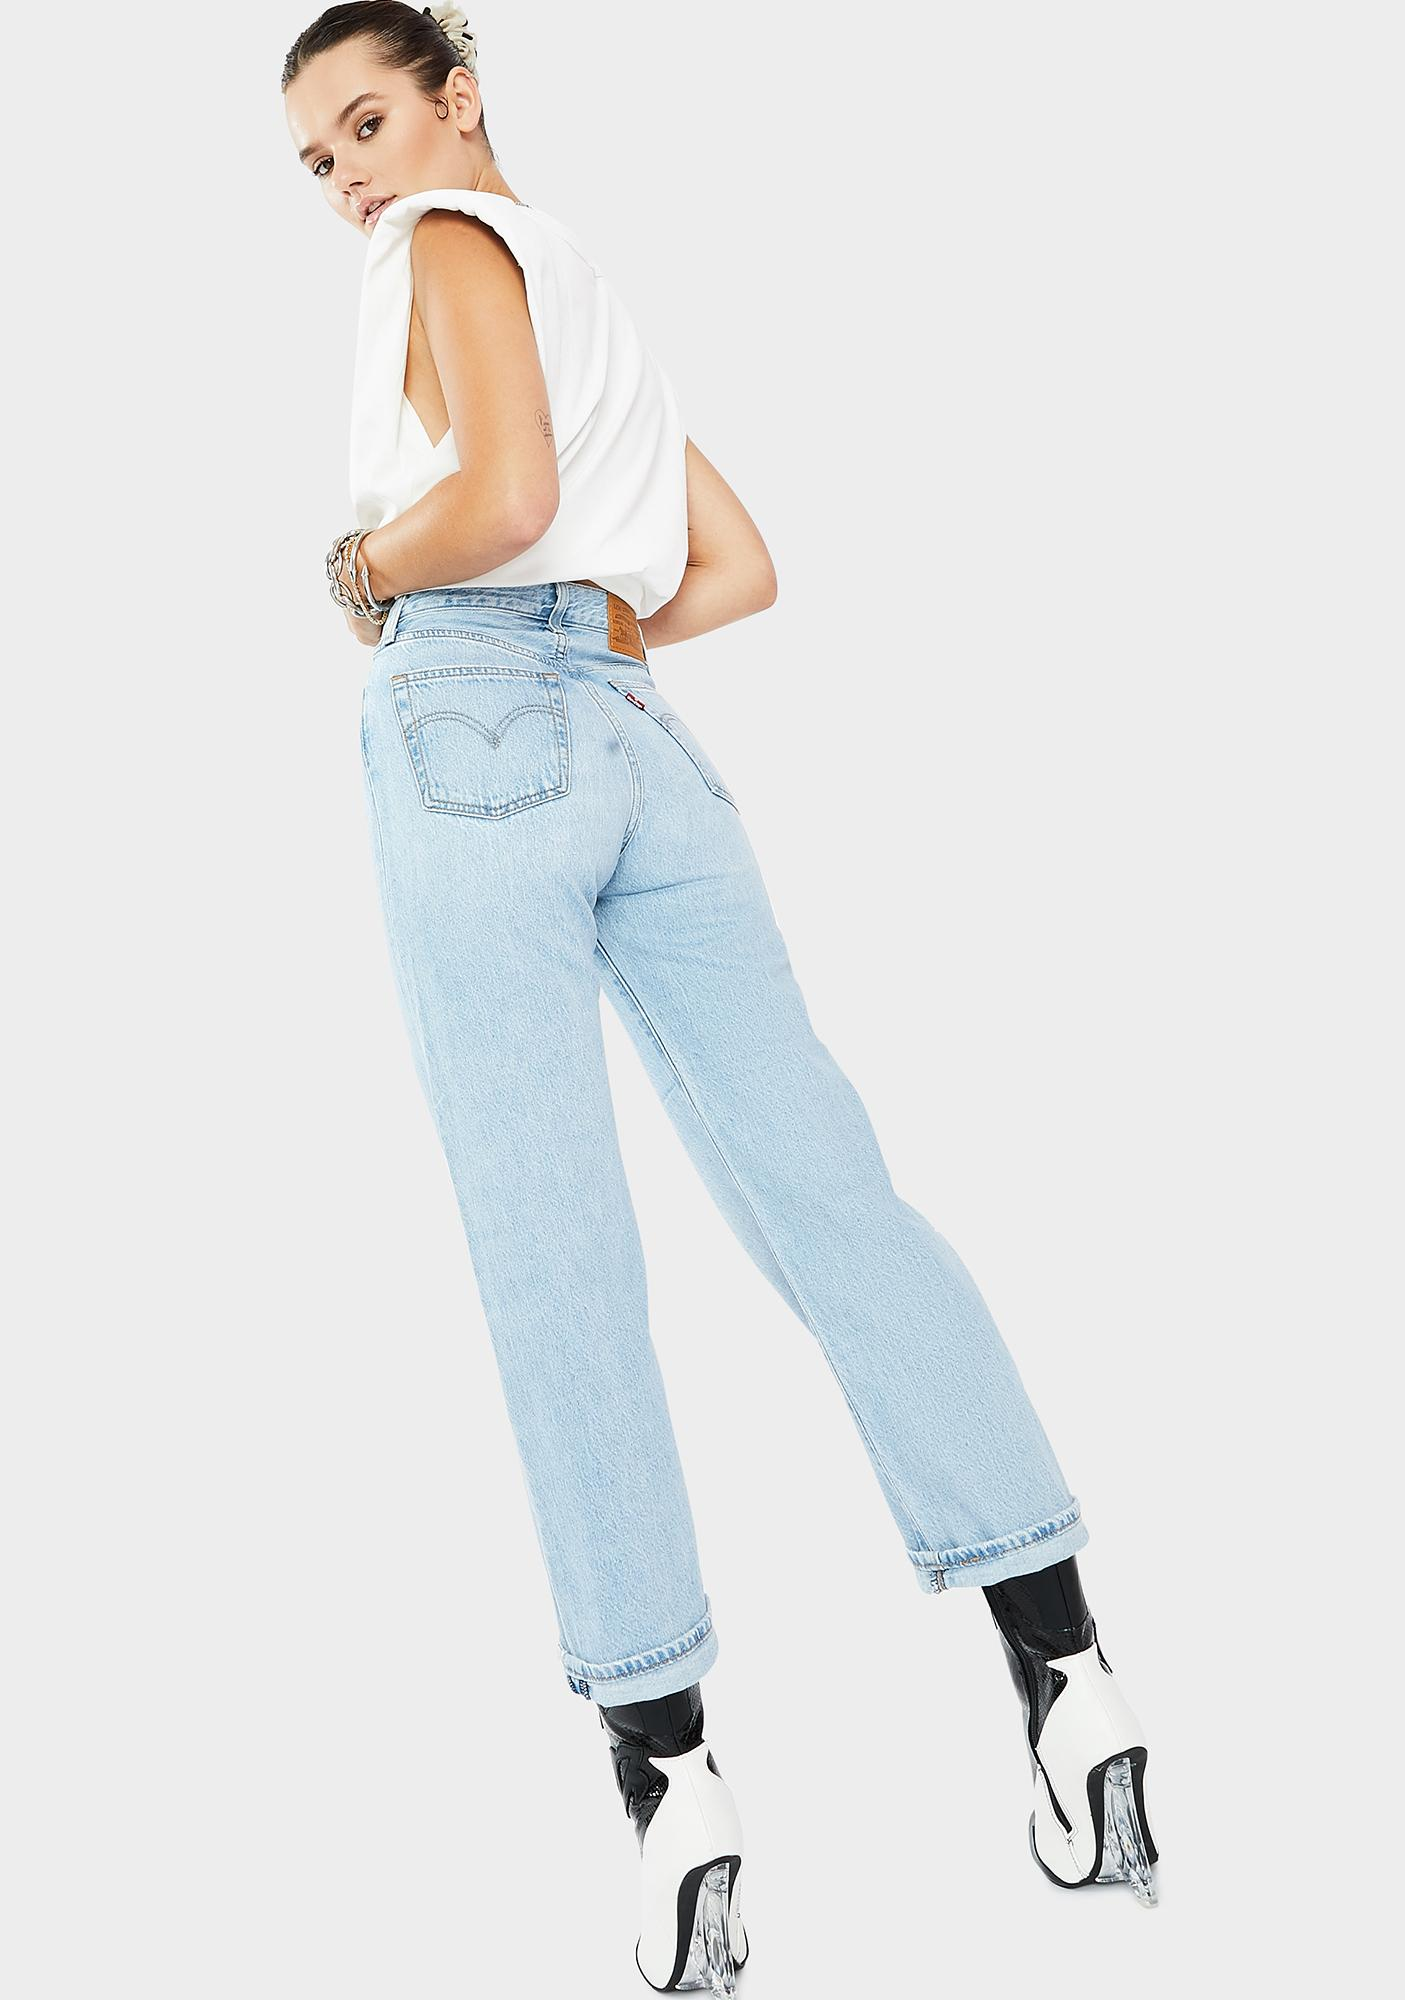 Levis Middle Road Denim Jeans